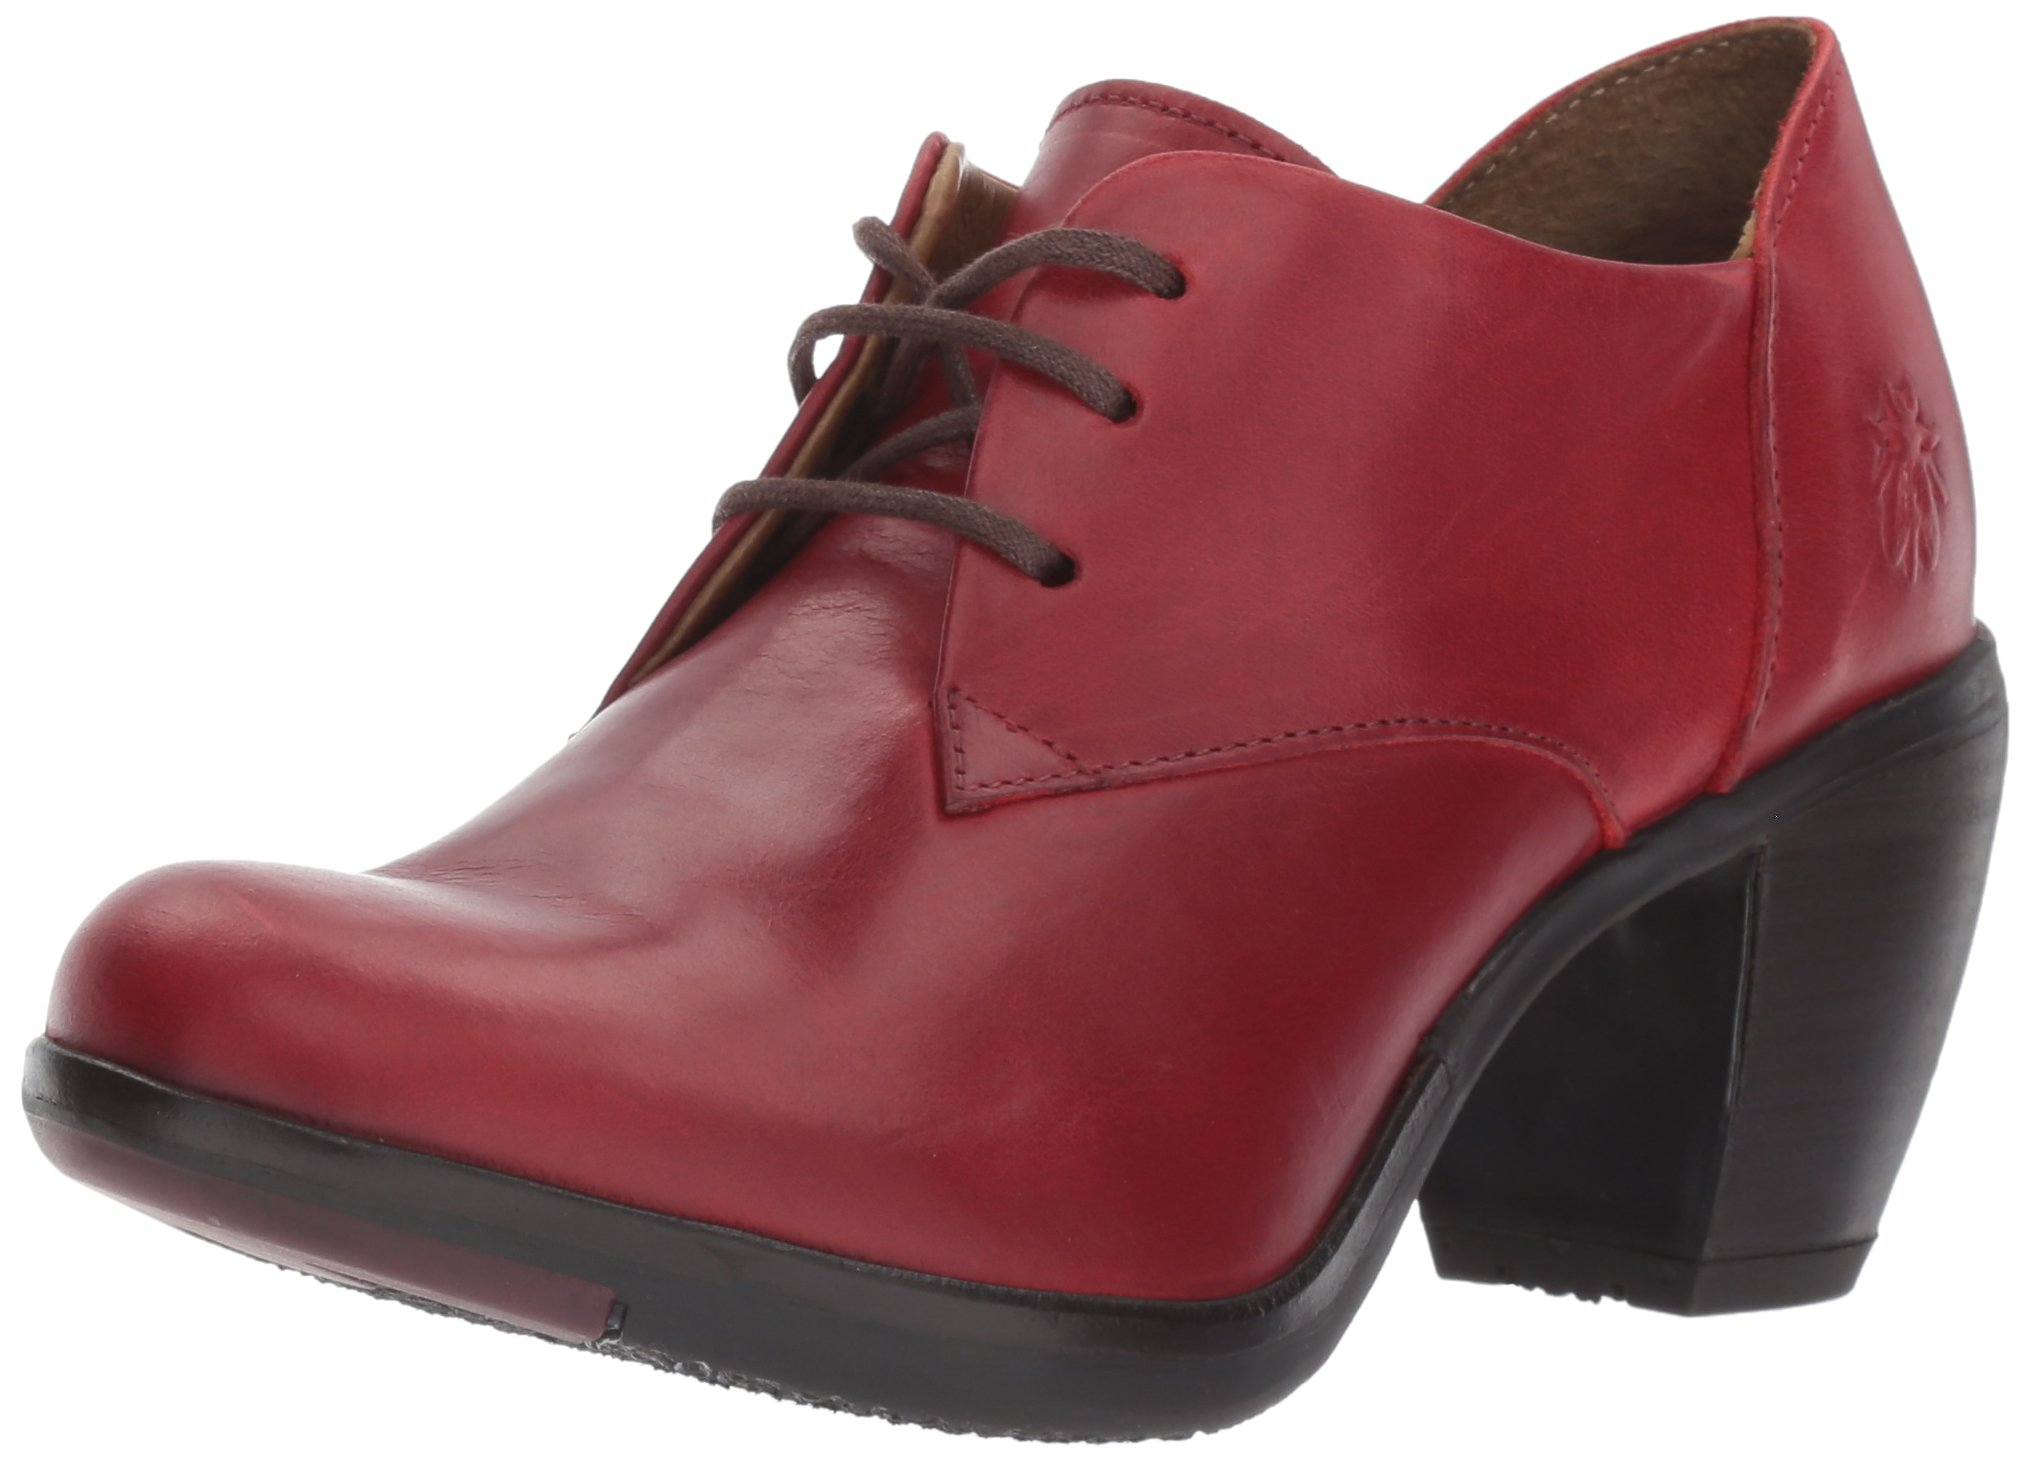 FLY London Women's HIRA128FLY Oxford, Red Rug, 39 M EU (8-8.5 US)